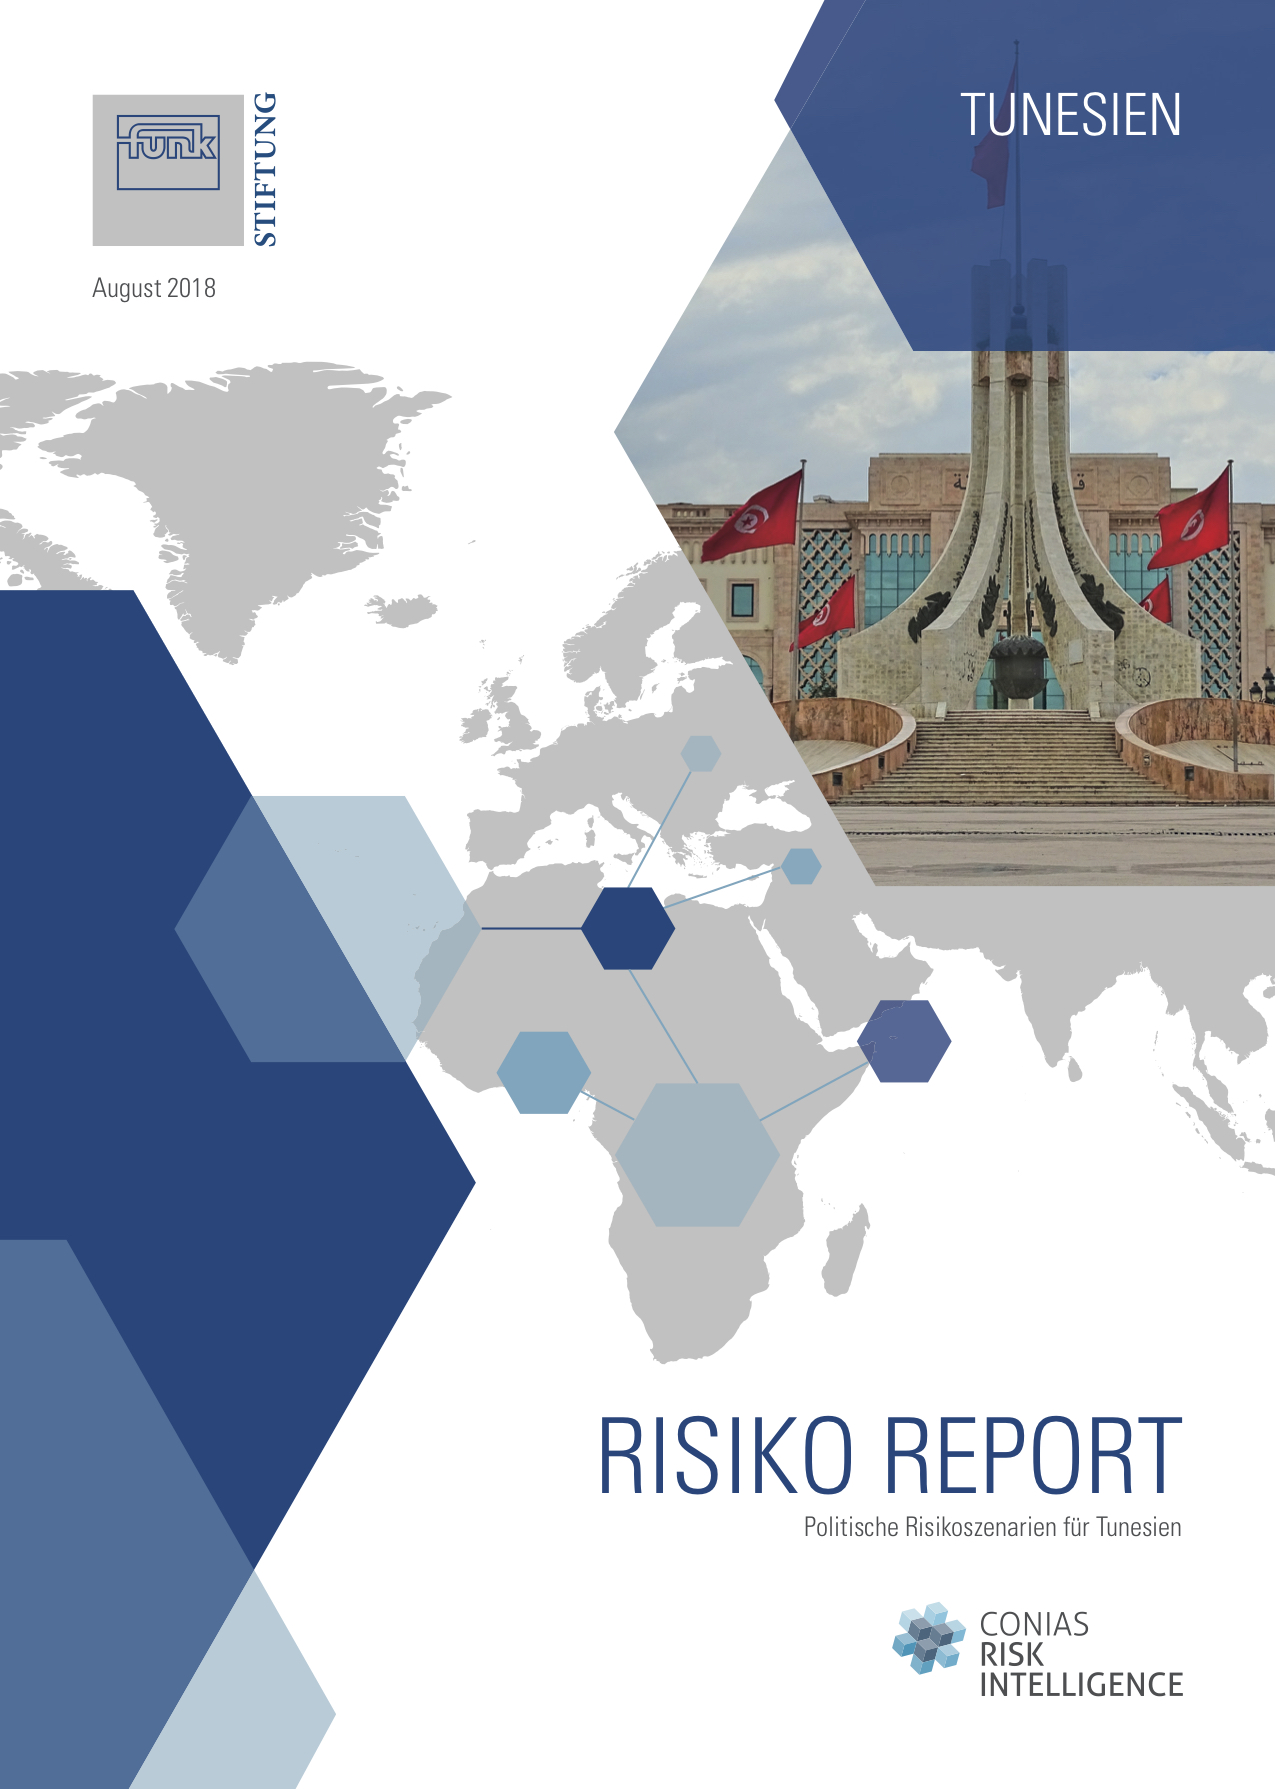 Risiko Report Tunesien